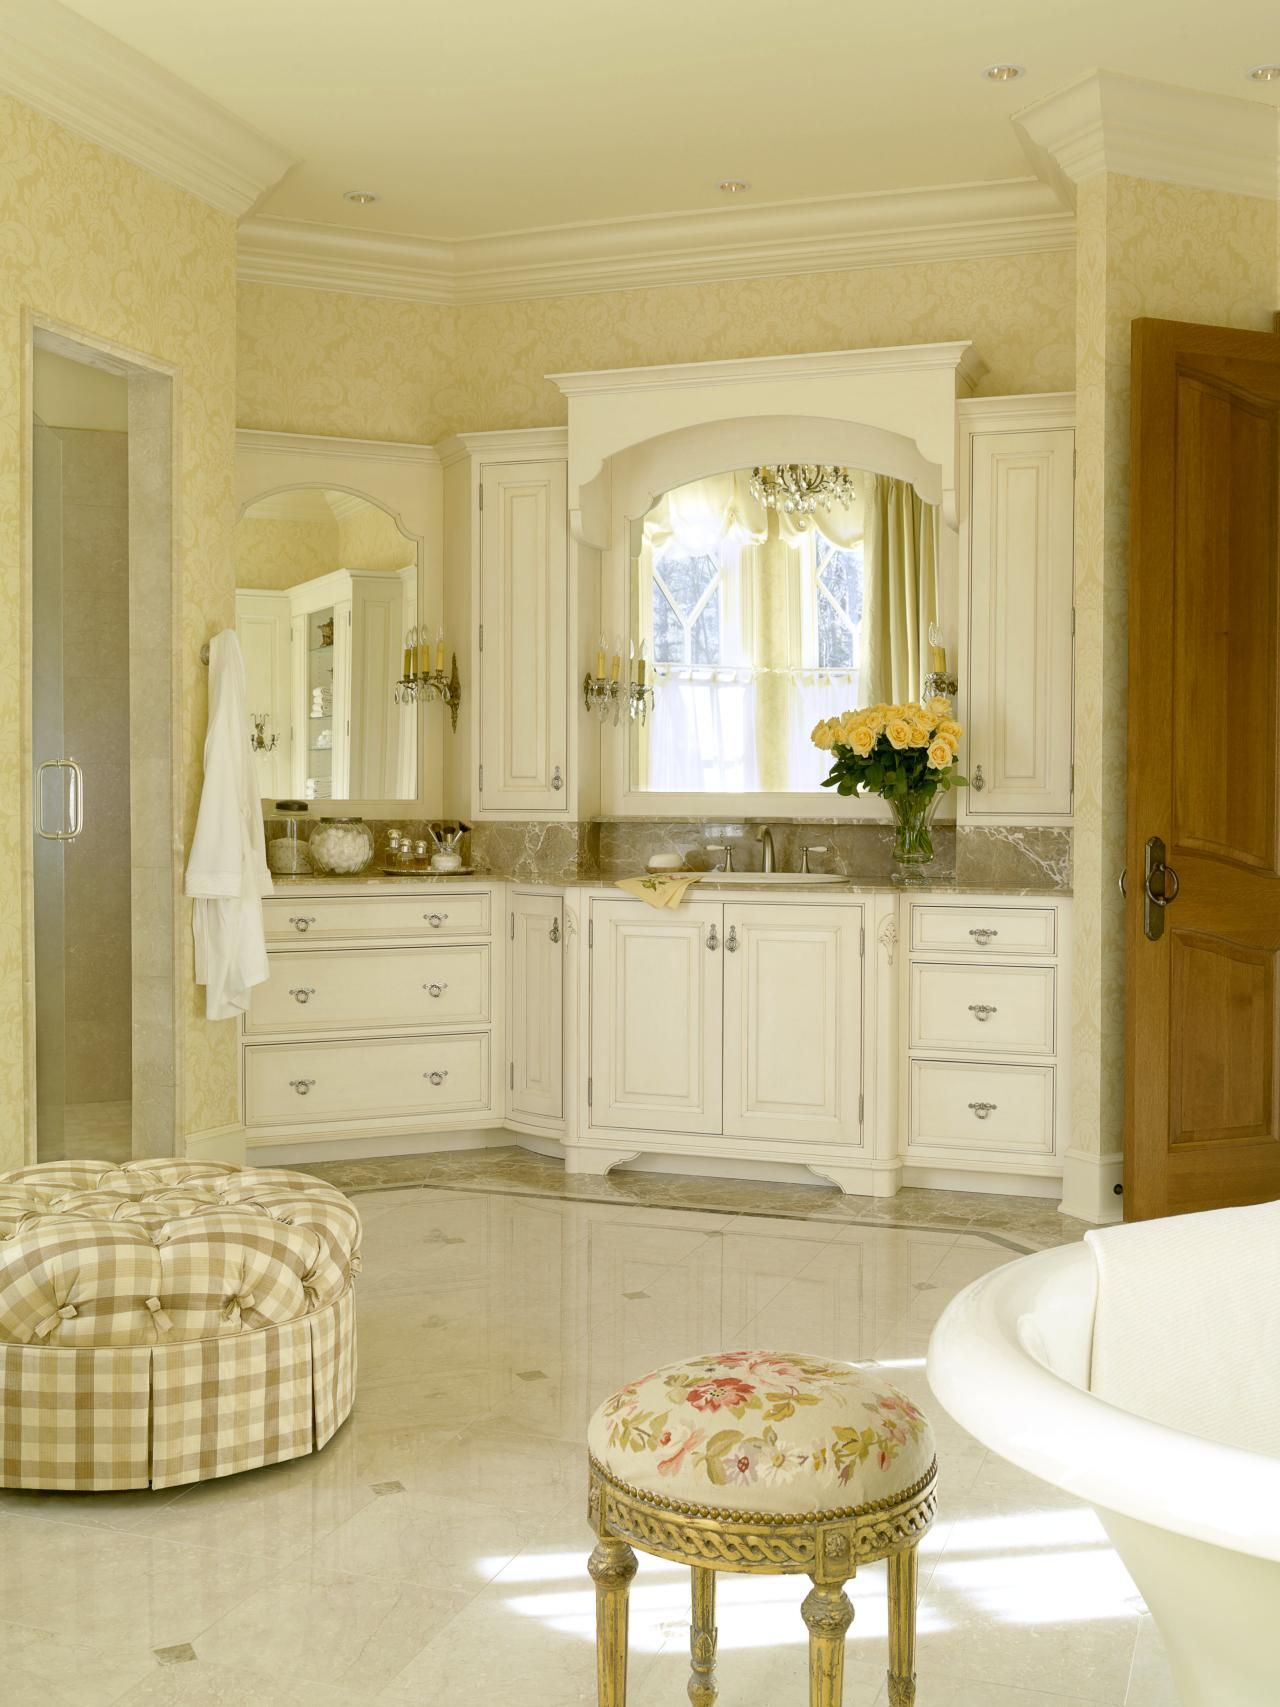 French Country Bathroom Design Hgtv Pictures & Ideas  Bathroom Stunning French Country Bathroom Designs Design Ideas